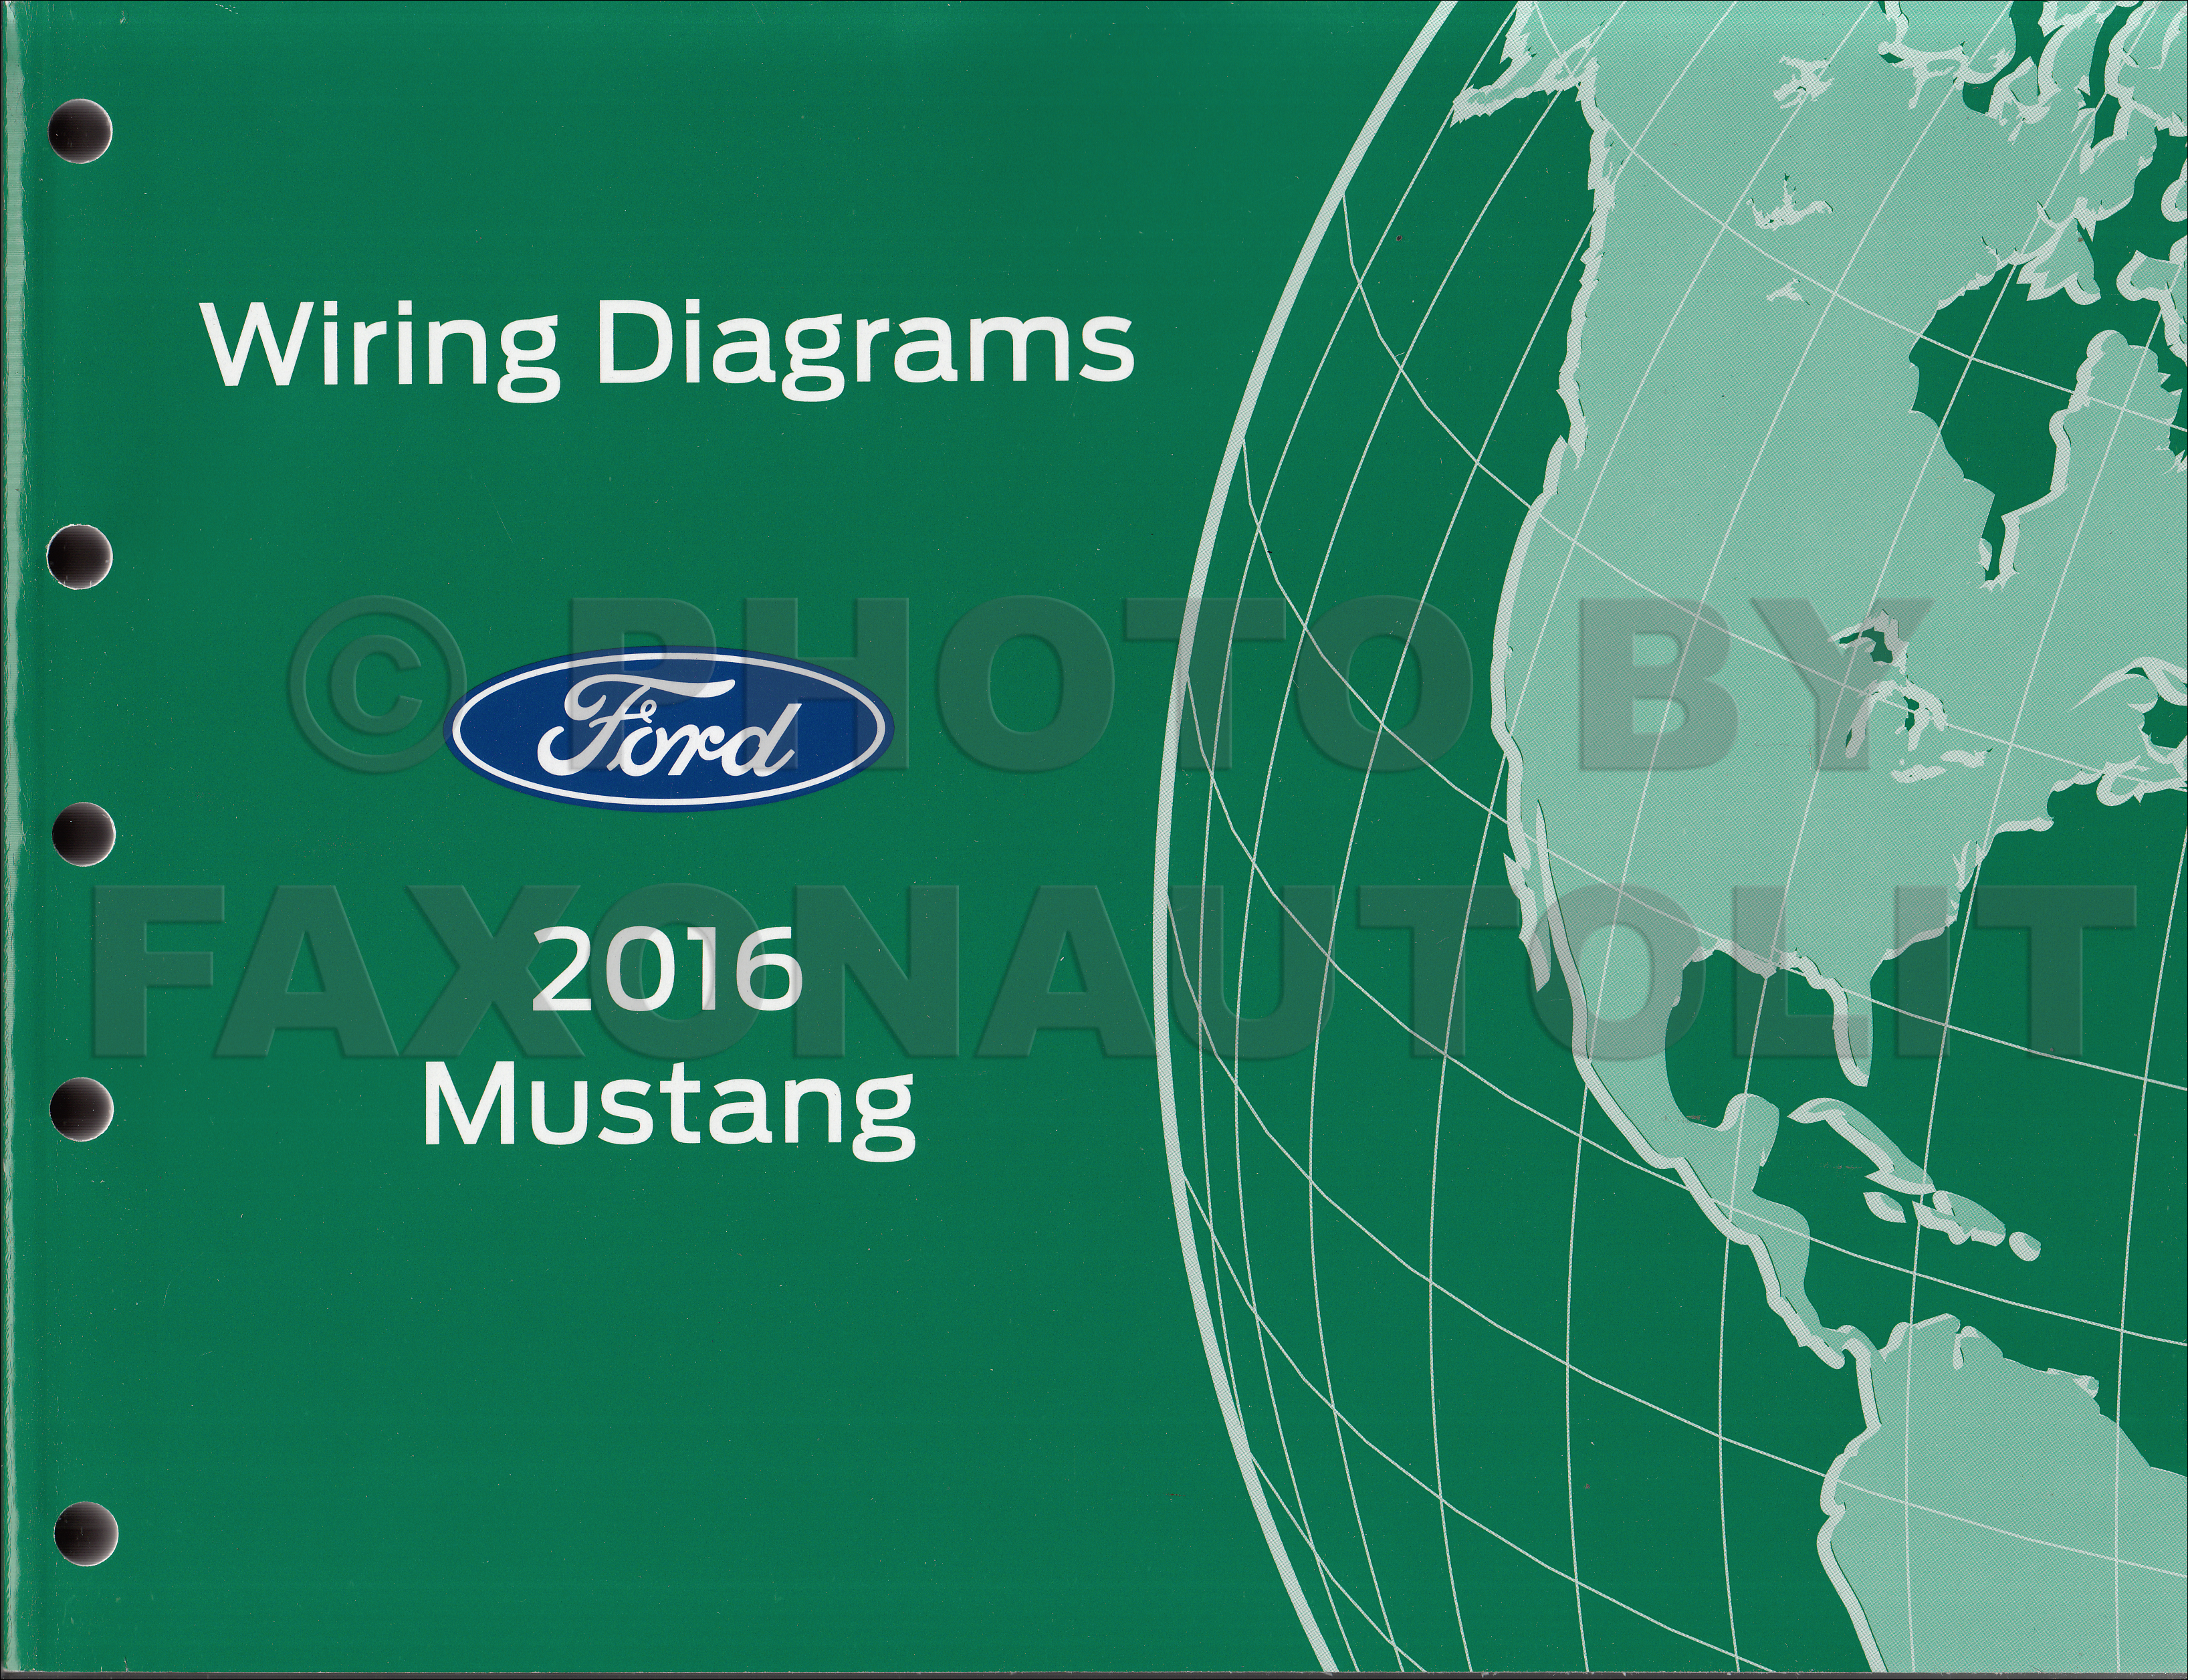 2016FordMustangOWD 2016 ford mustang wiring diagram manual original 2017 Mustang EcoBoost Coupe at webbmarketing.co